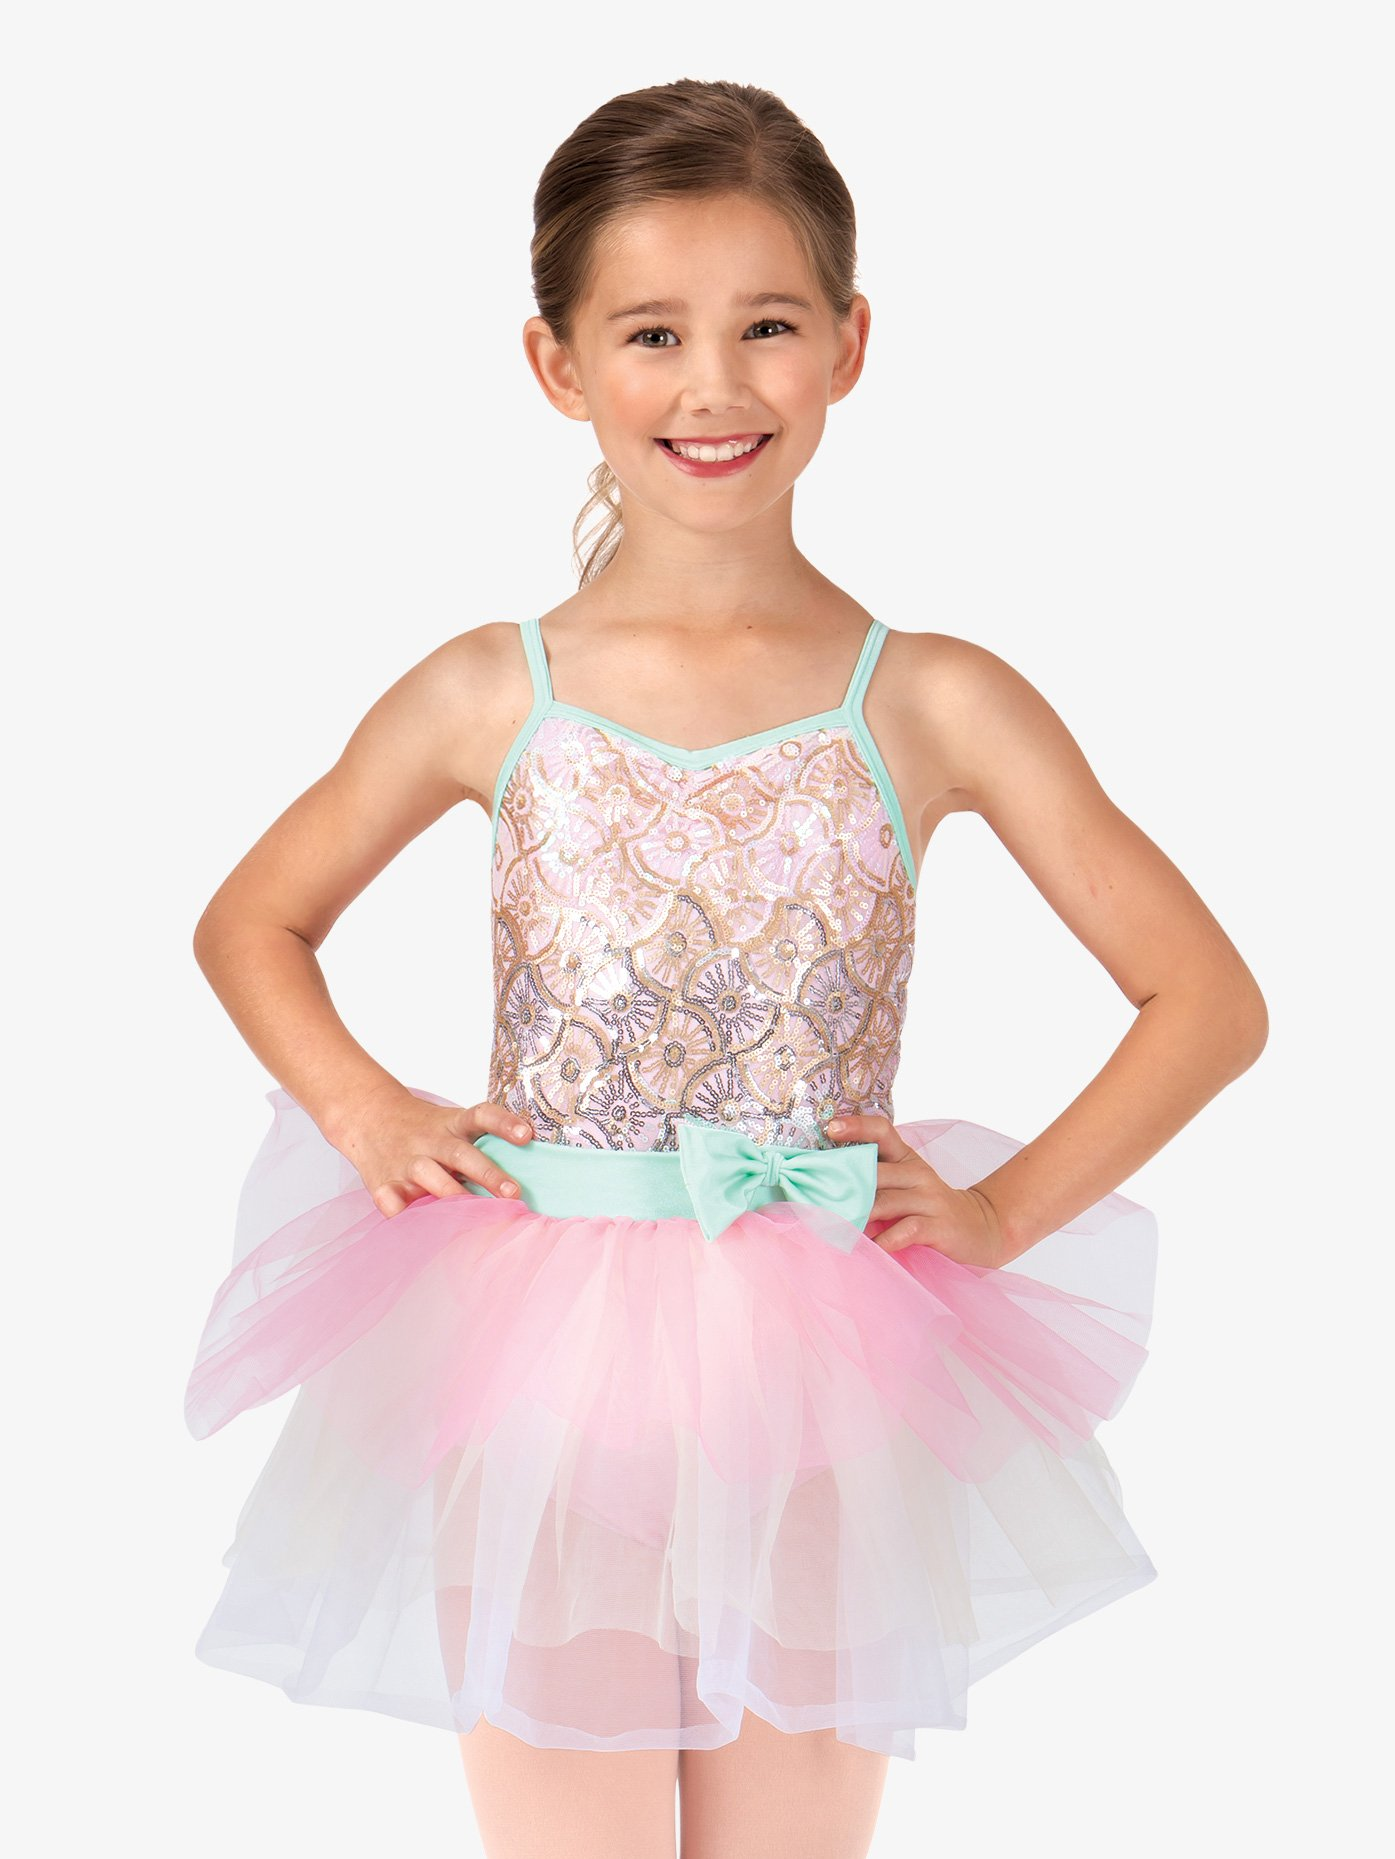 La Petite Ballerina Child Sequin Starburst Camisole Tutu Costume Dress PB2002C